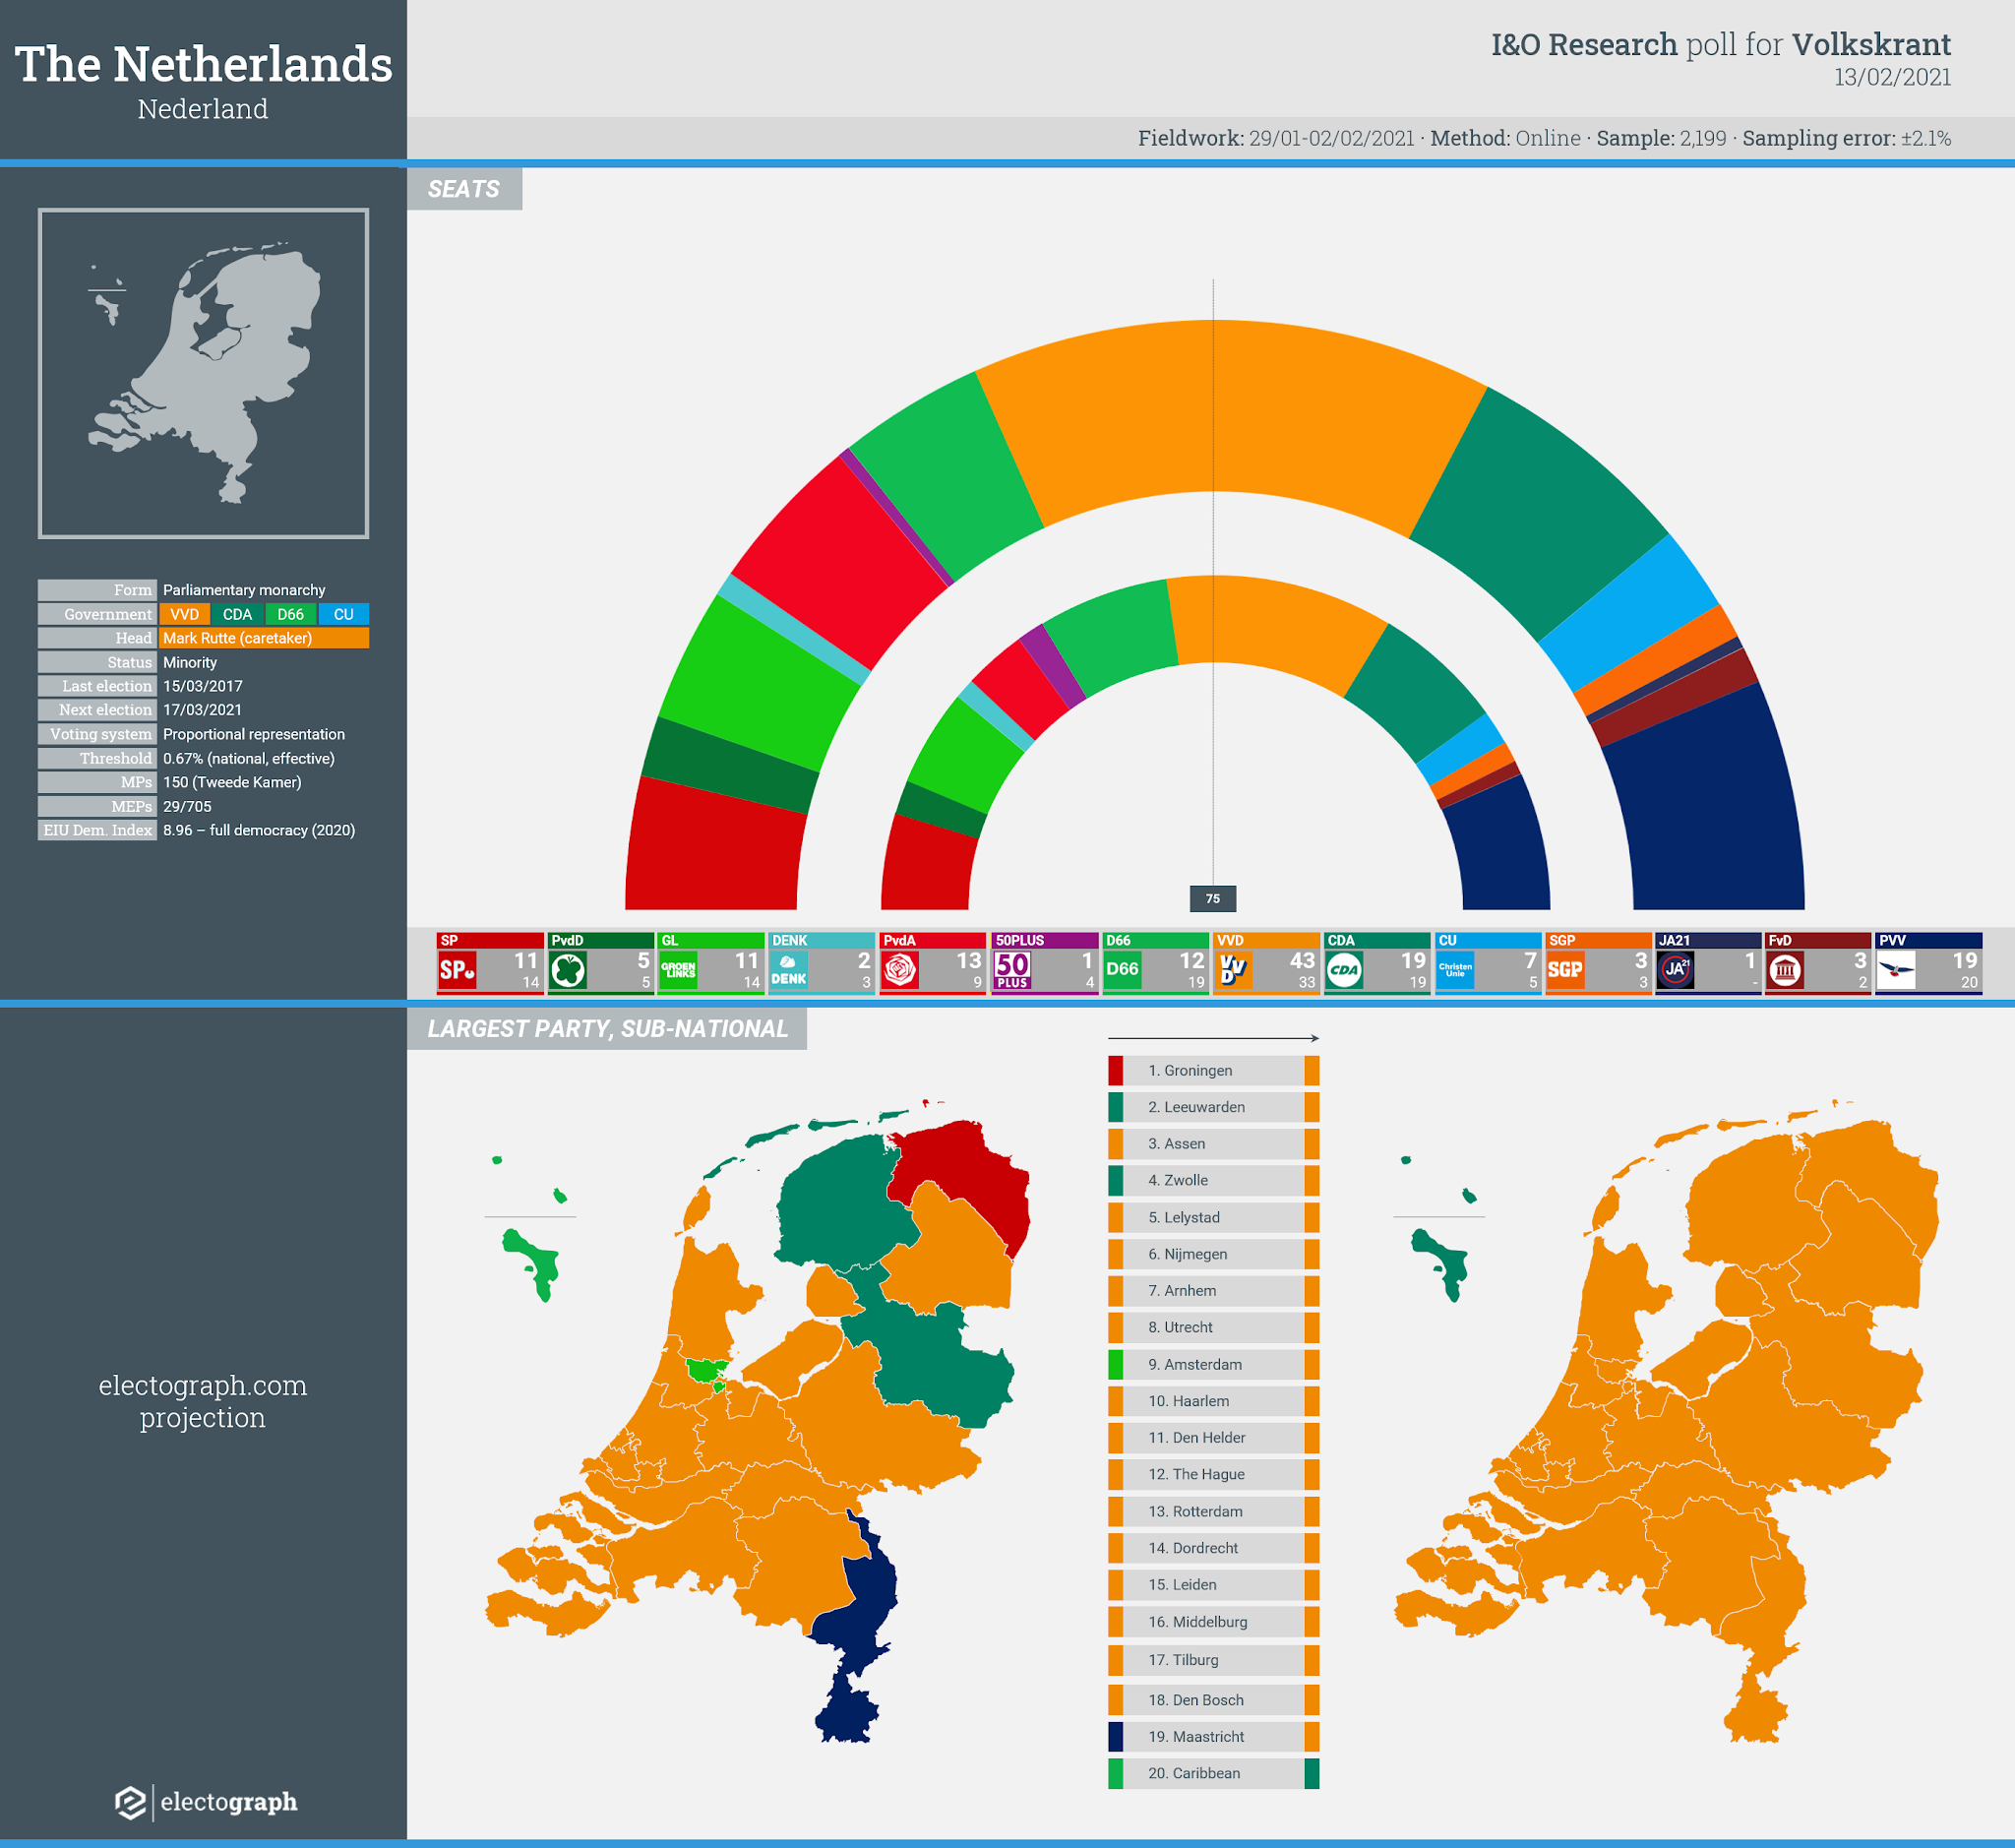 THE NETHERLANDS: I&O Research poll chart for Volkskrant, 13 February 2021